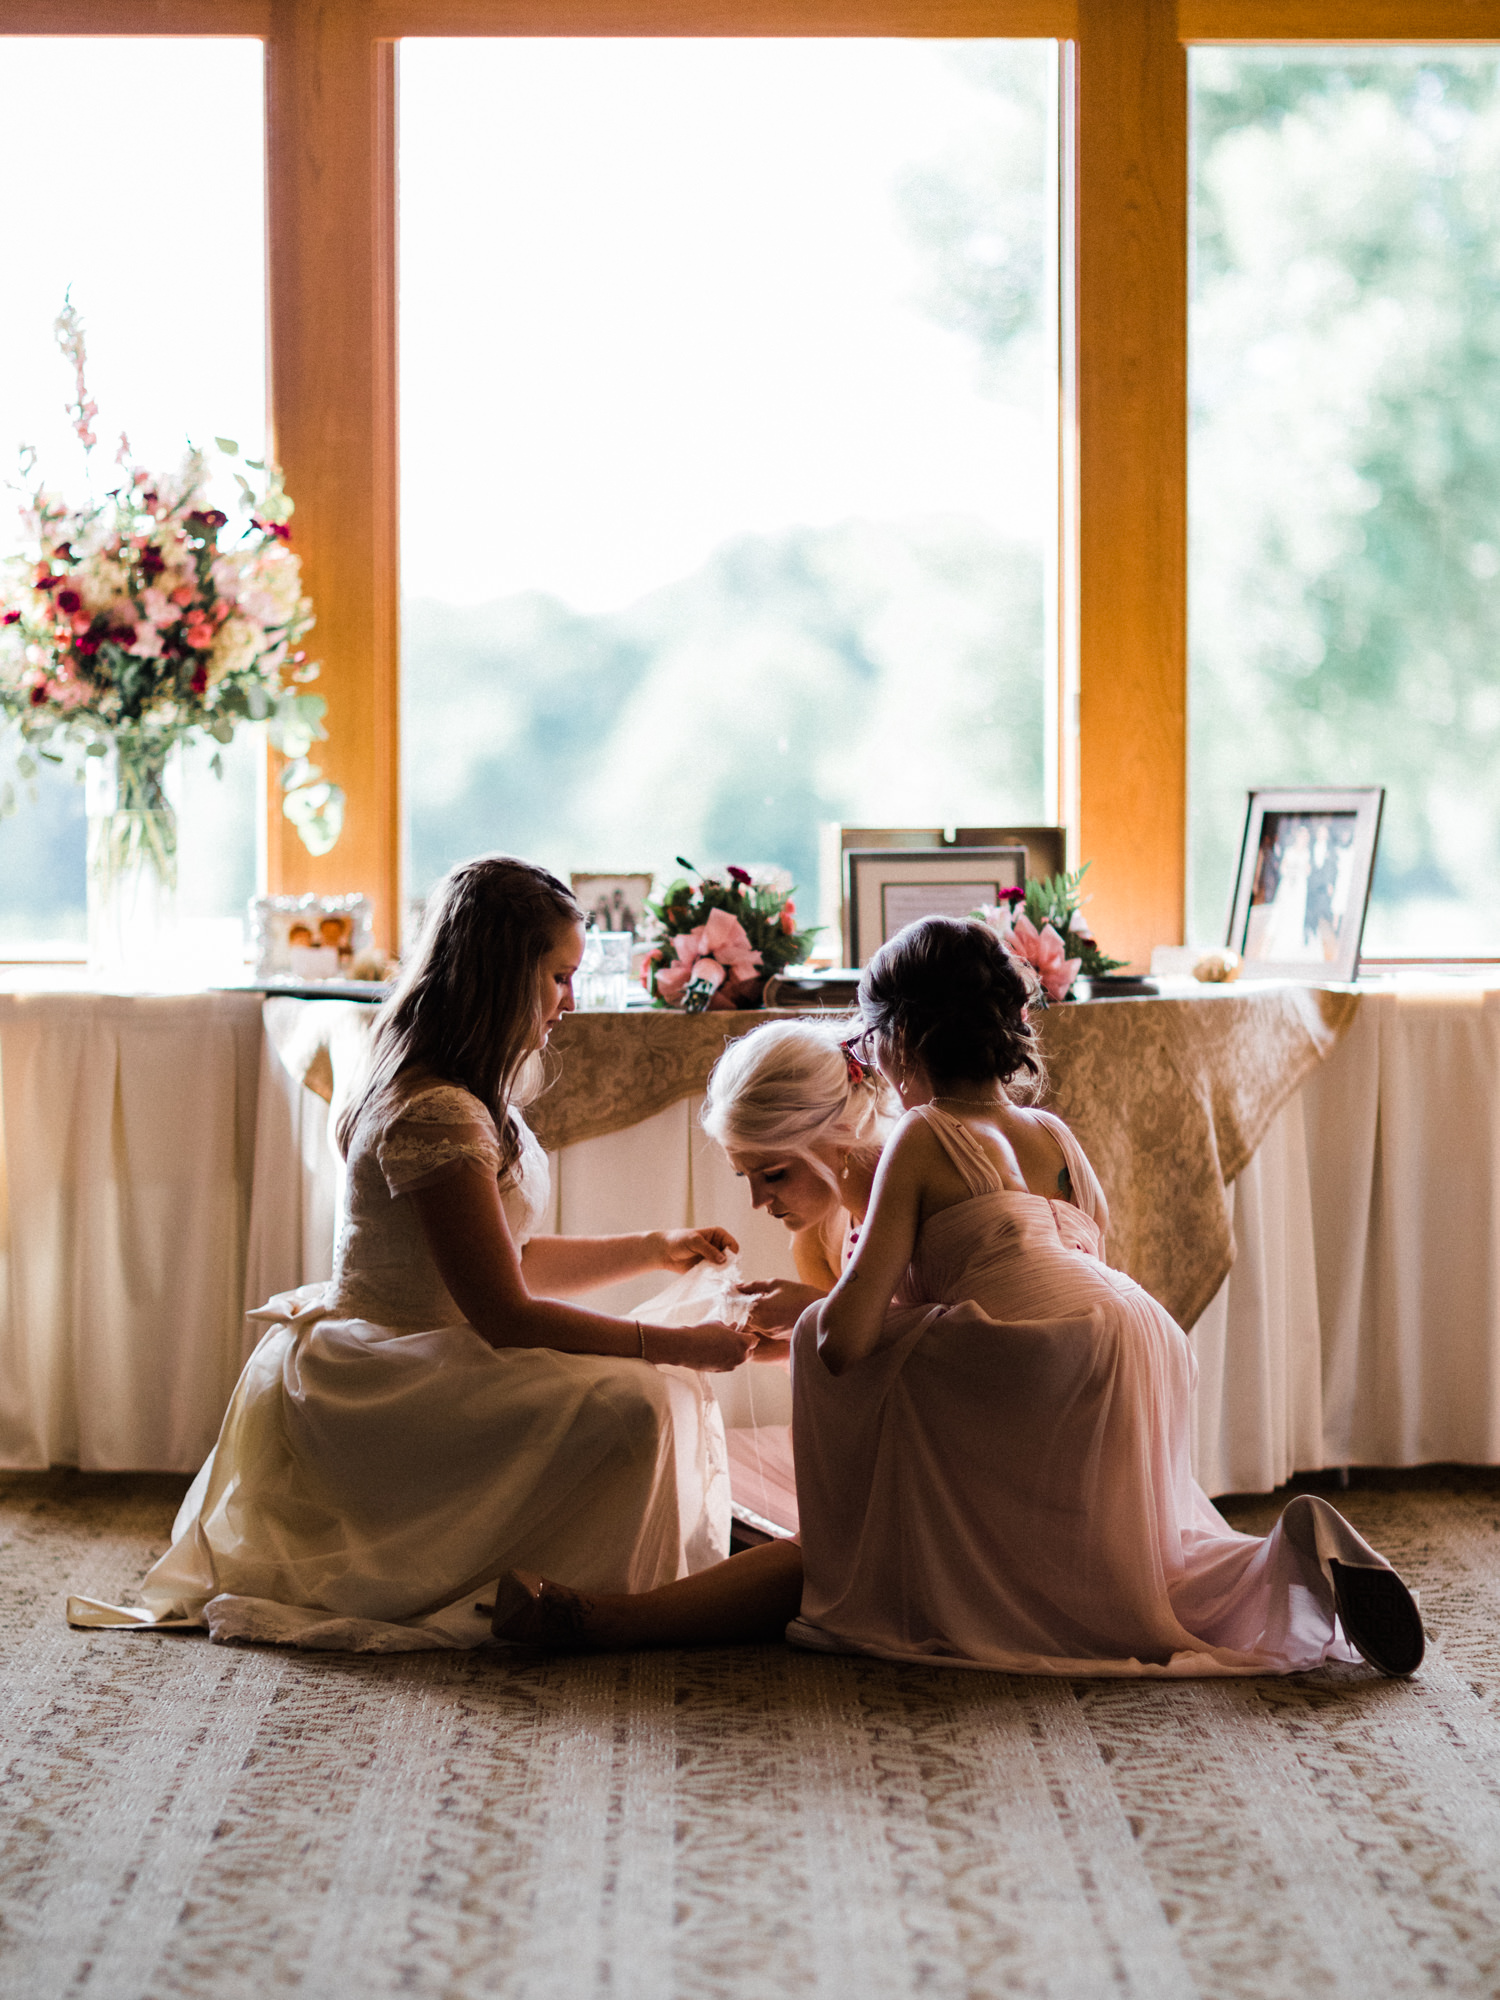 0060-TTFS-DALLAS-WEDDING-PHOTOGRAPHER-20180623.jpg